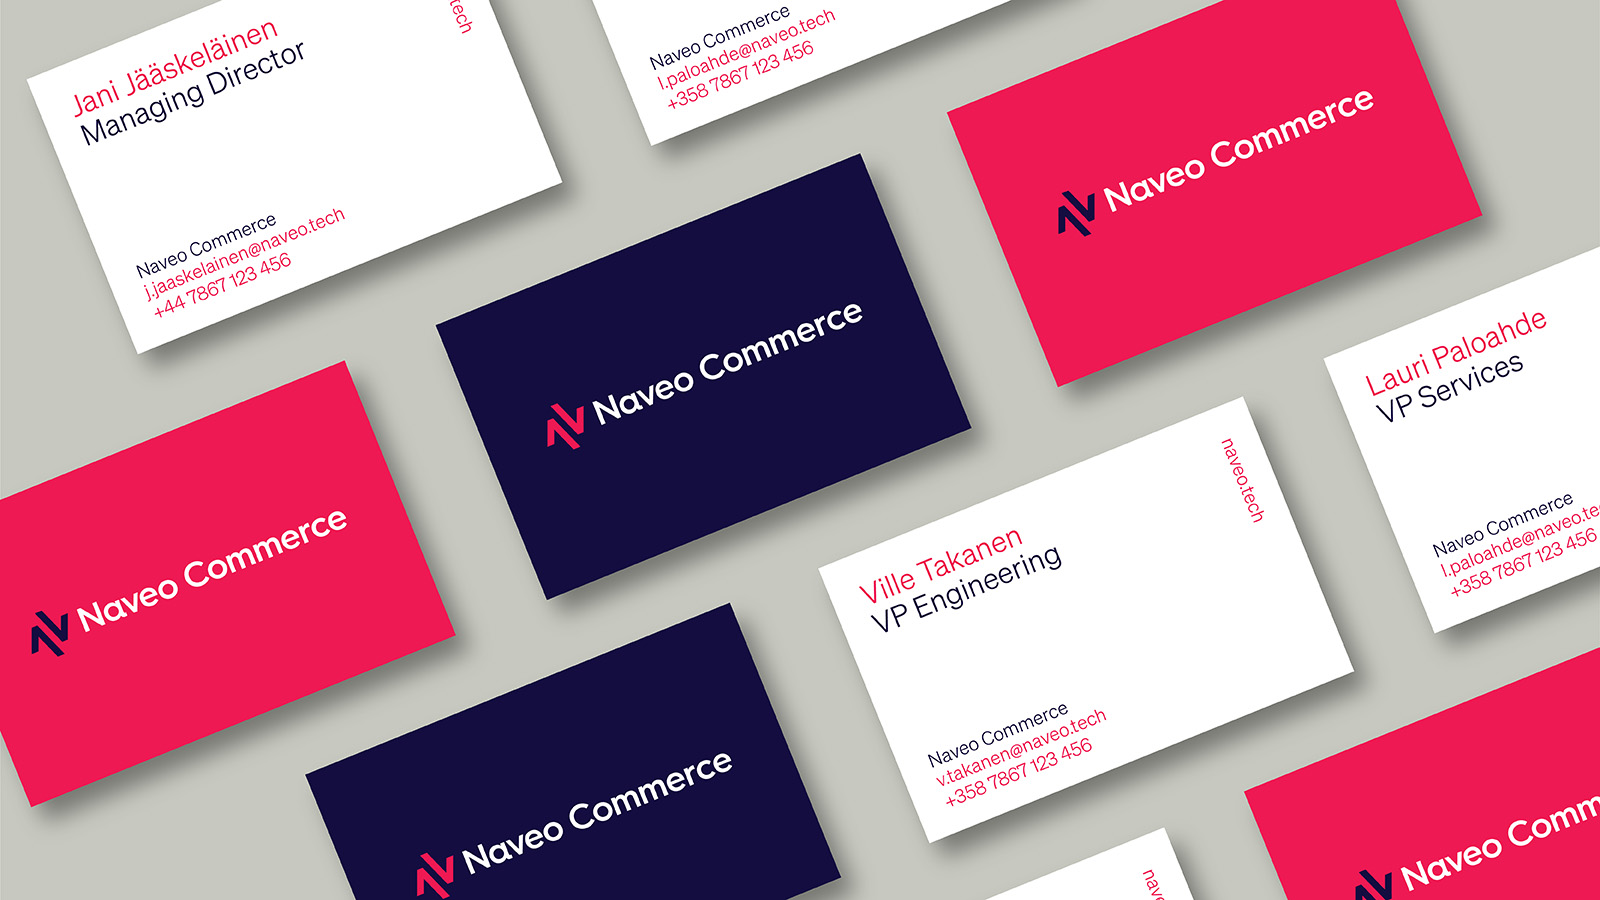 naveo commerce business cards design by Leeds based Freelance Designer Neil Holroyd